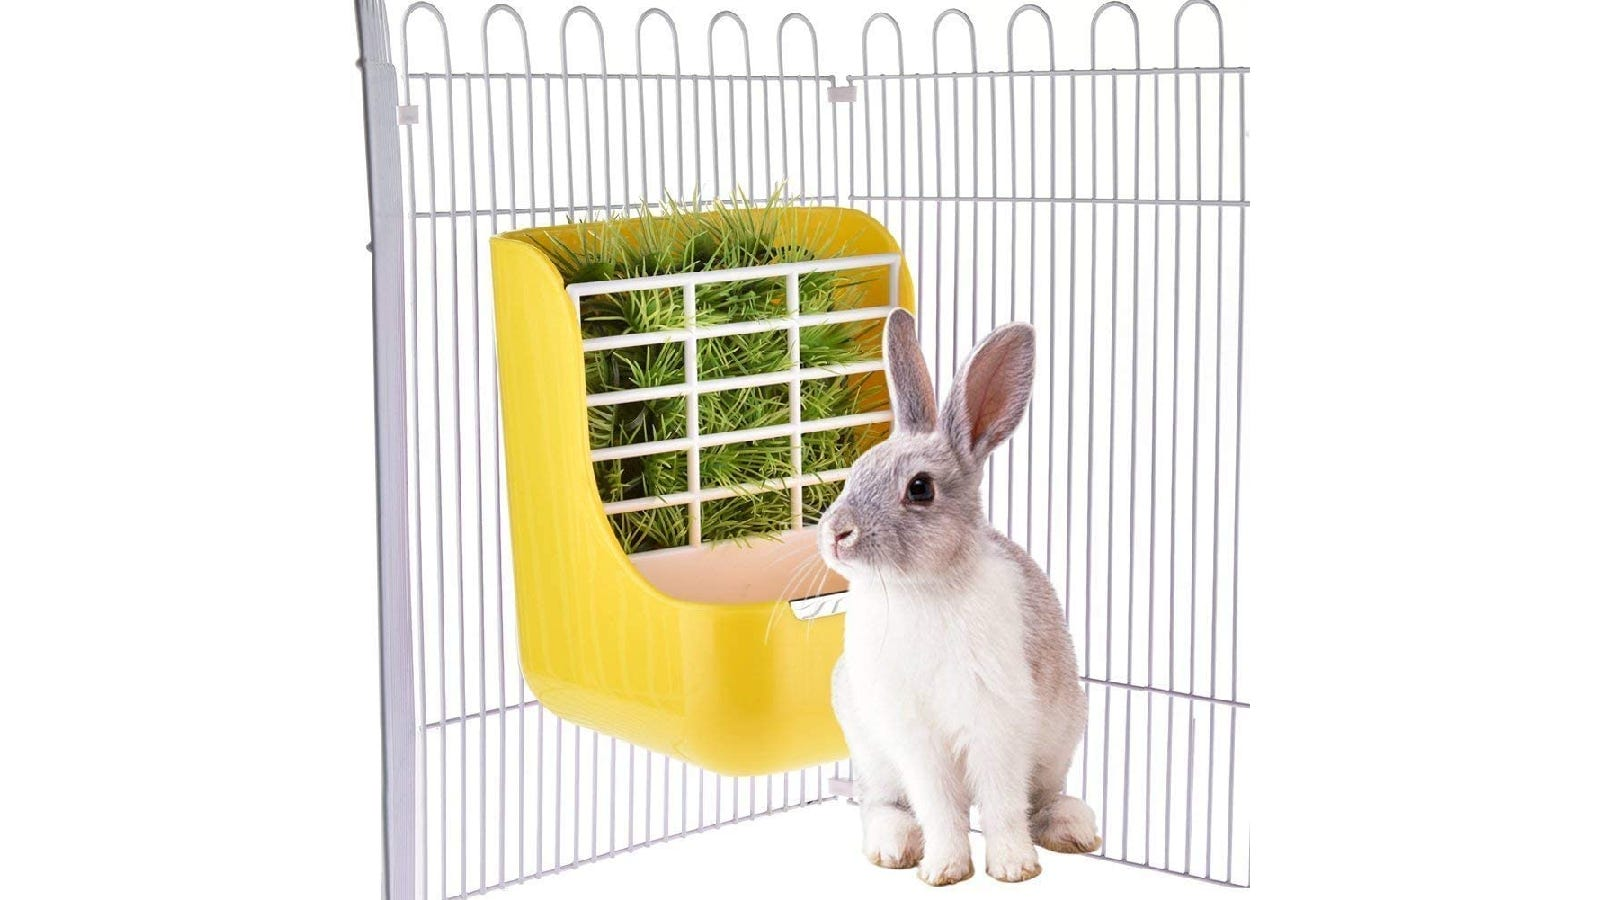 Yellow hay feeder attached to a cage with a white rabbit in front of it.